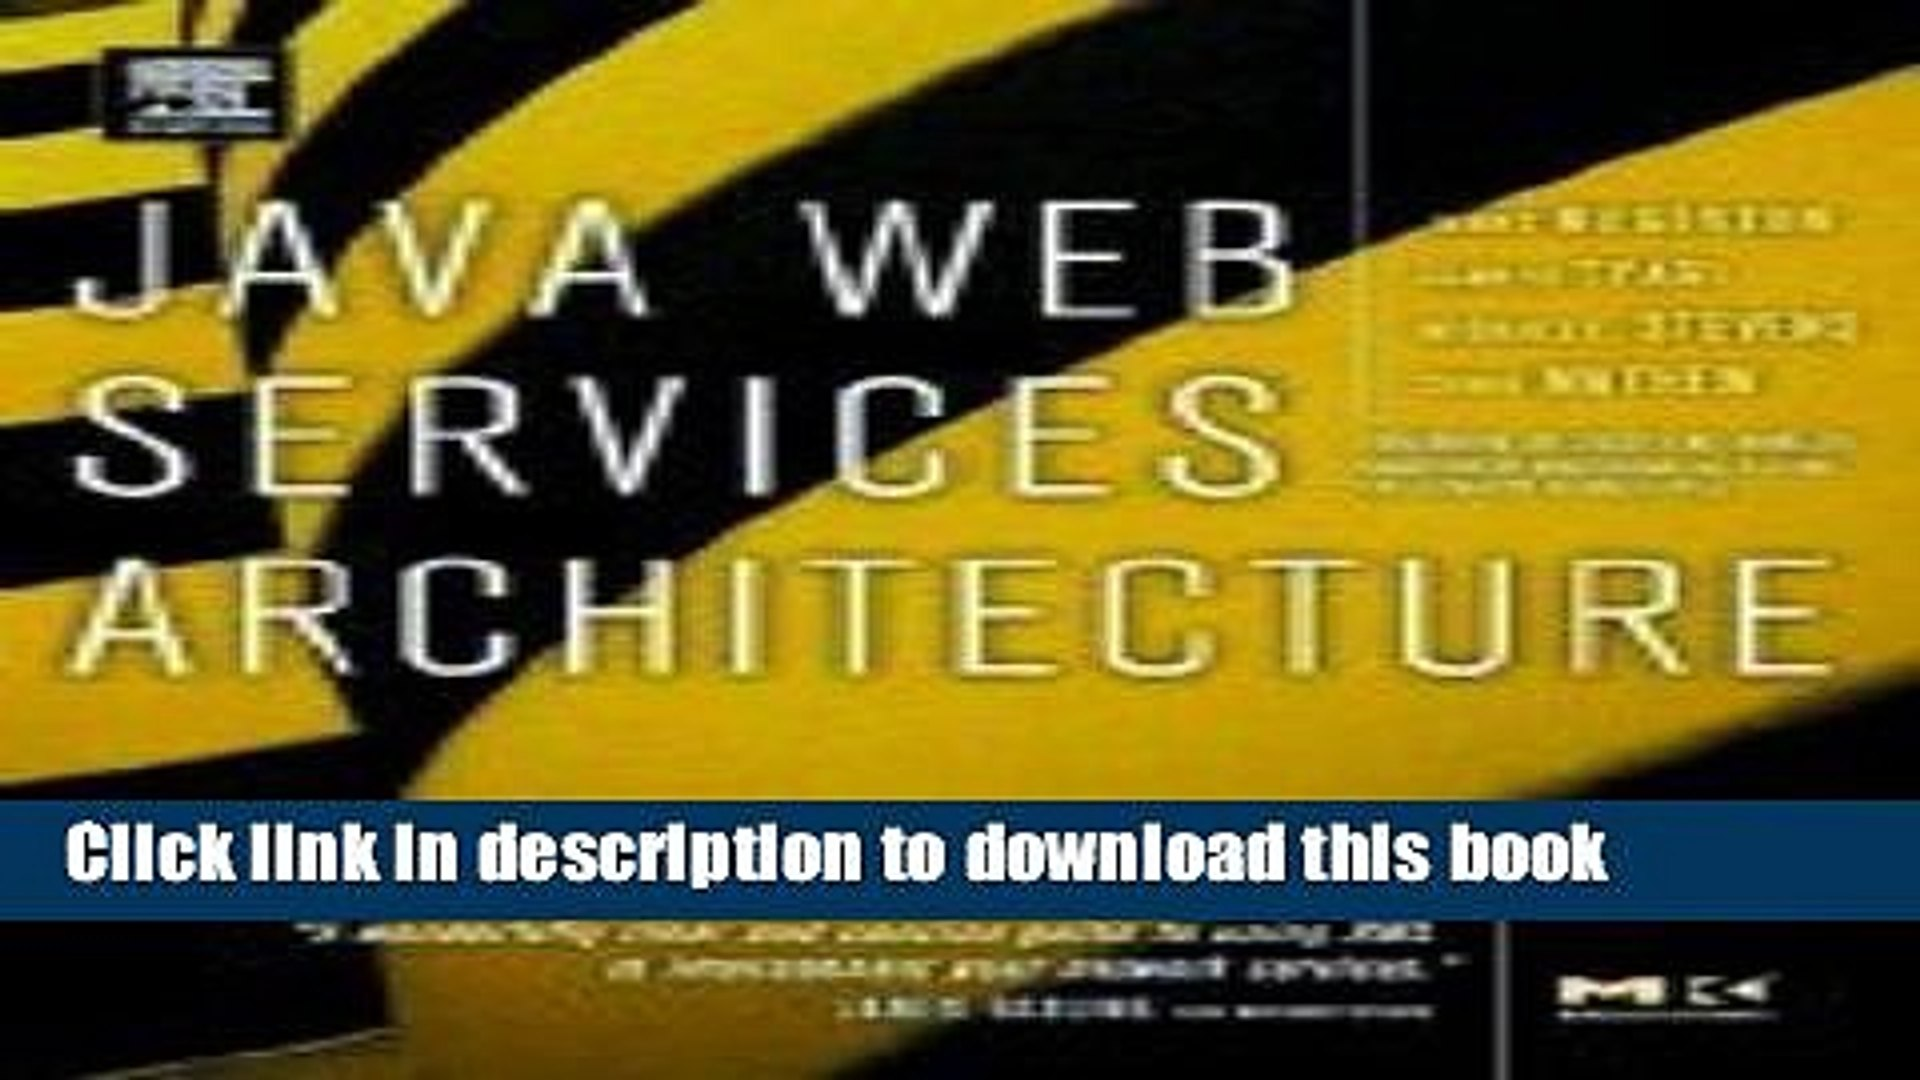 Read Java Web Services Architecture (03) by McGovern, James - Tyagi, Sameer - Stevens, Michael -